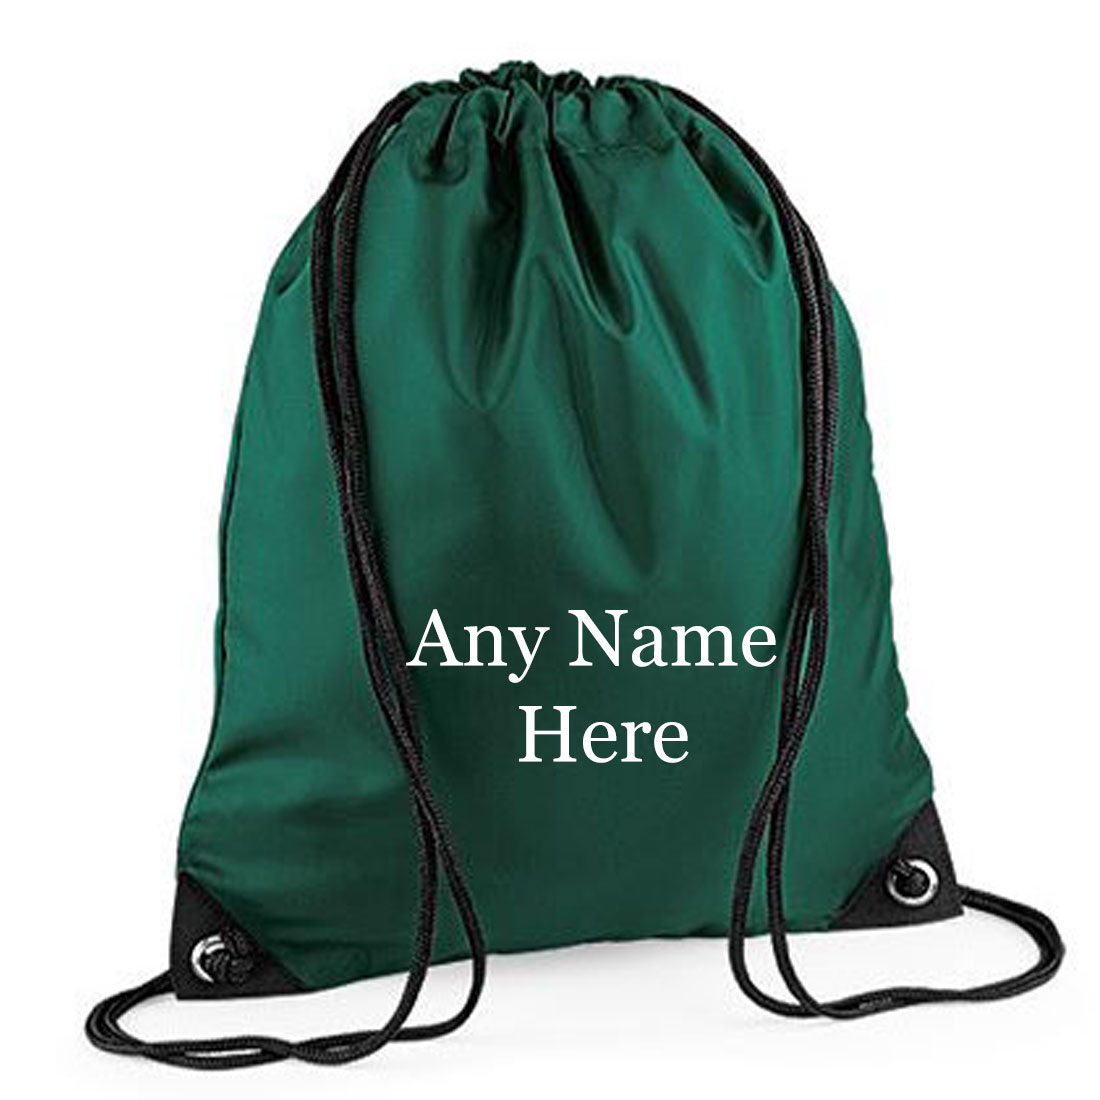 Printed  Any Name  Drawstring Gym Bag